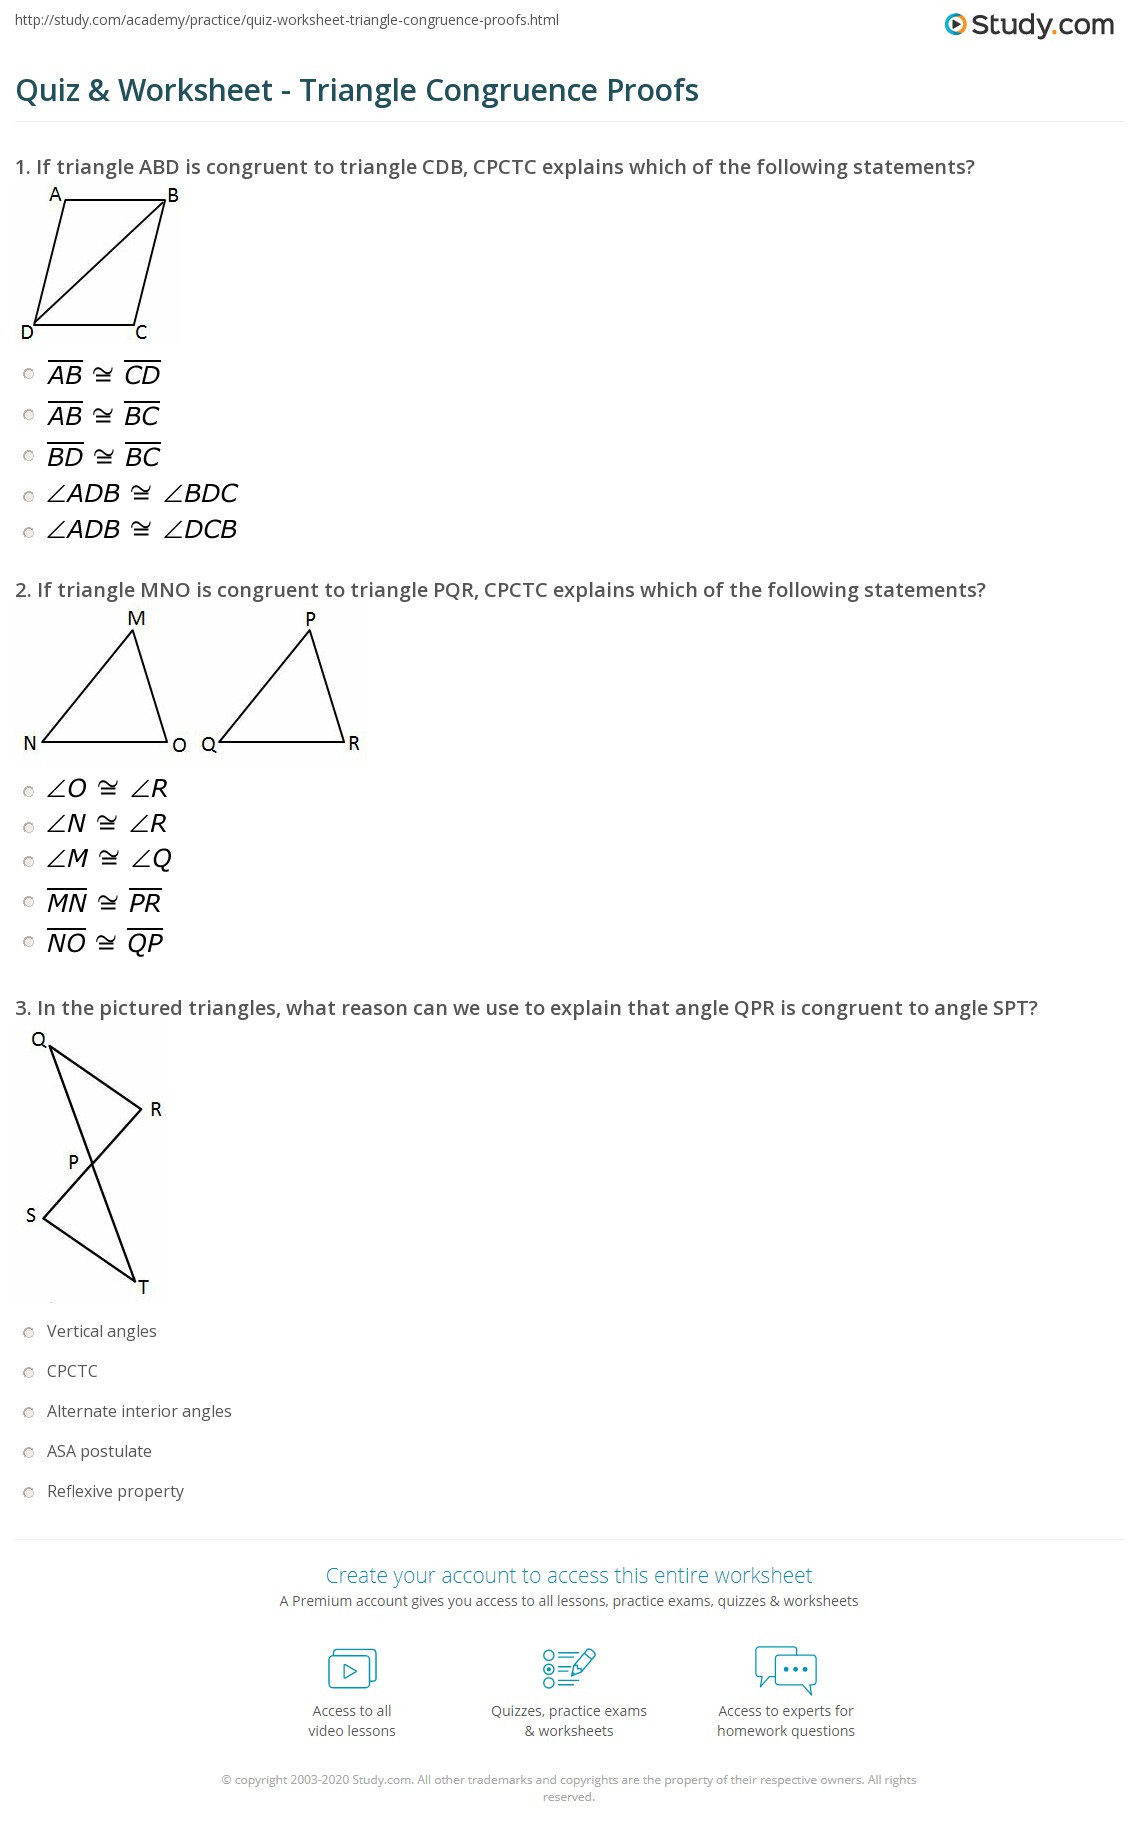 quiz worksheet triangle congruence proofs